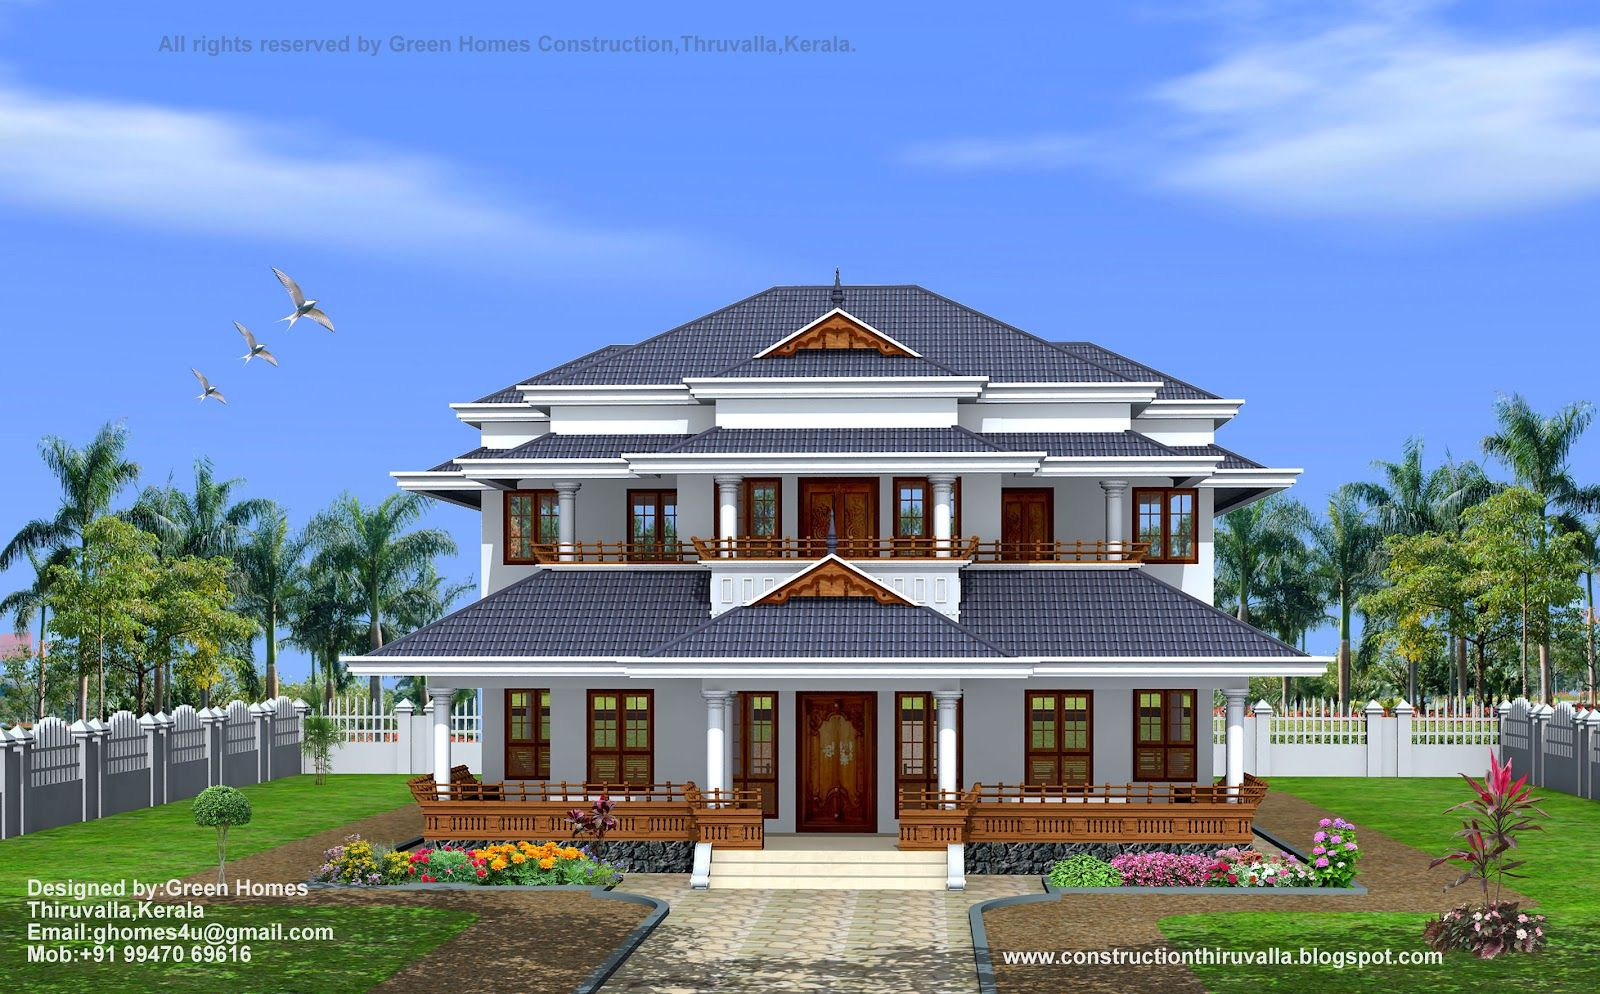 Perfect Sq Feet Traditional Style Home Designed Green Homes Thiruvalla India Style  House Designs Kerala Home Design Floor Plans